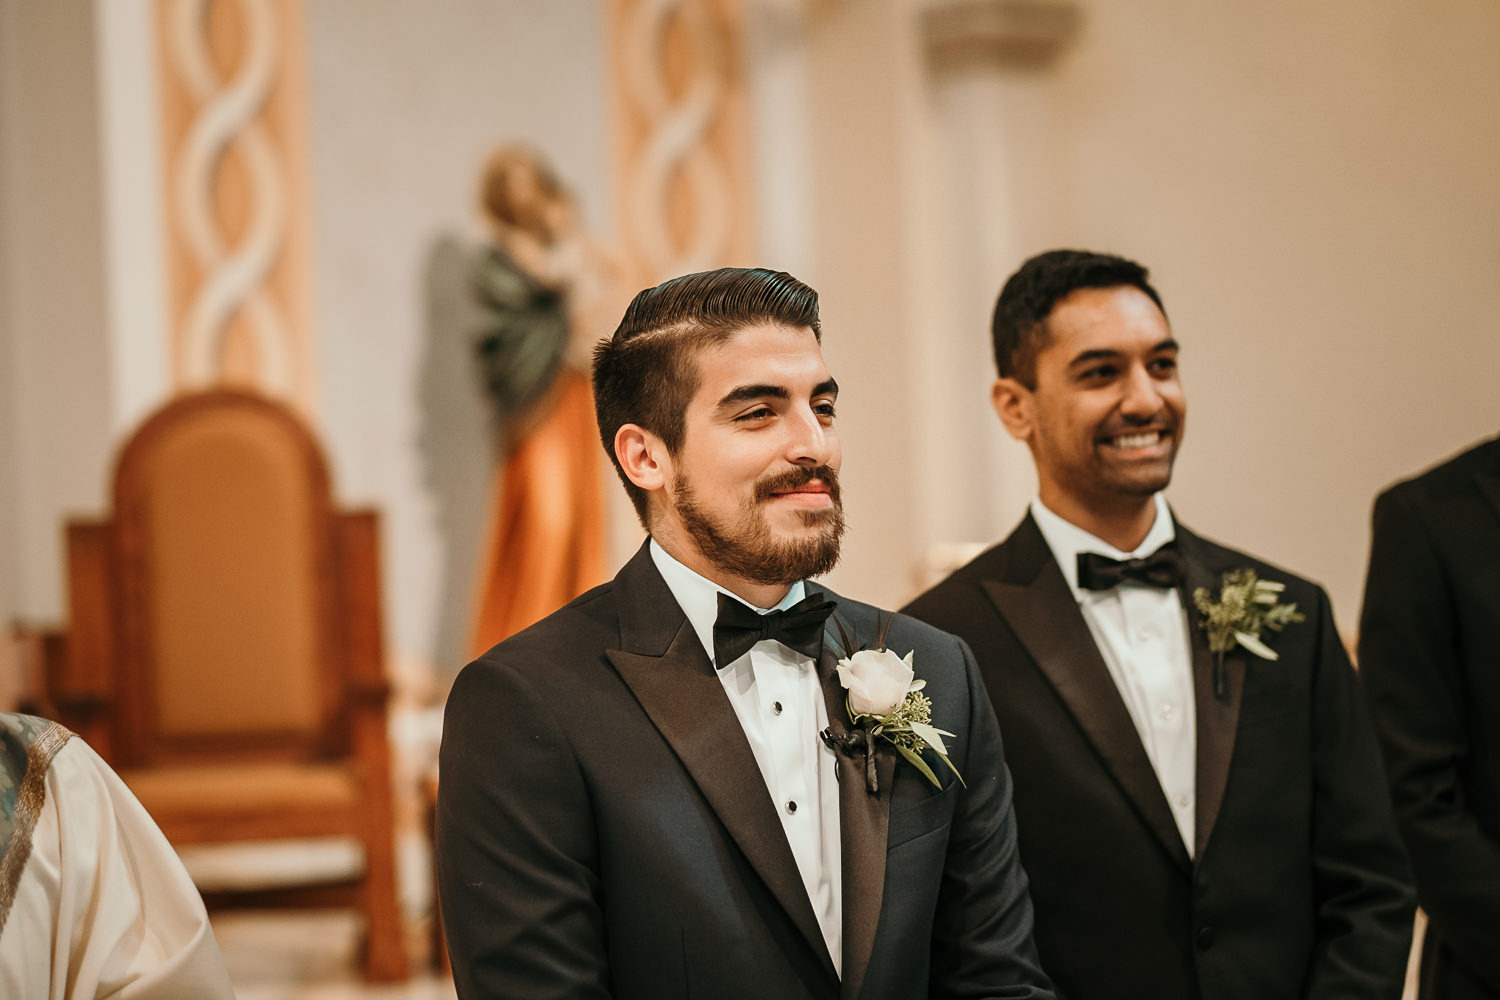 close up of groom smiling waiting on his new bride